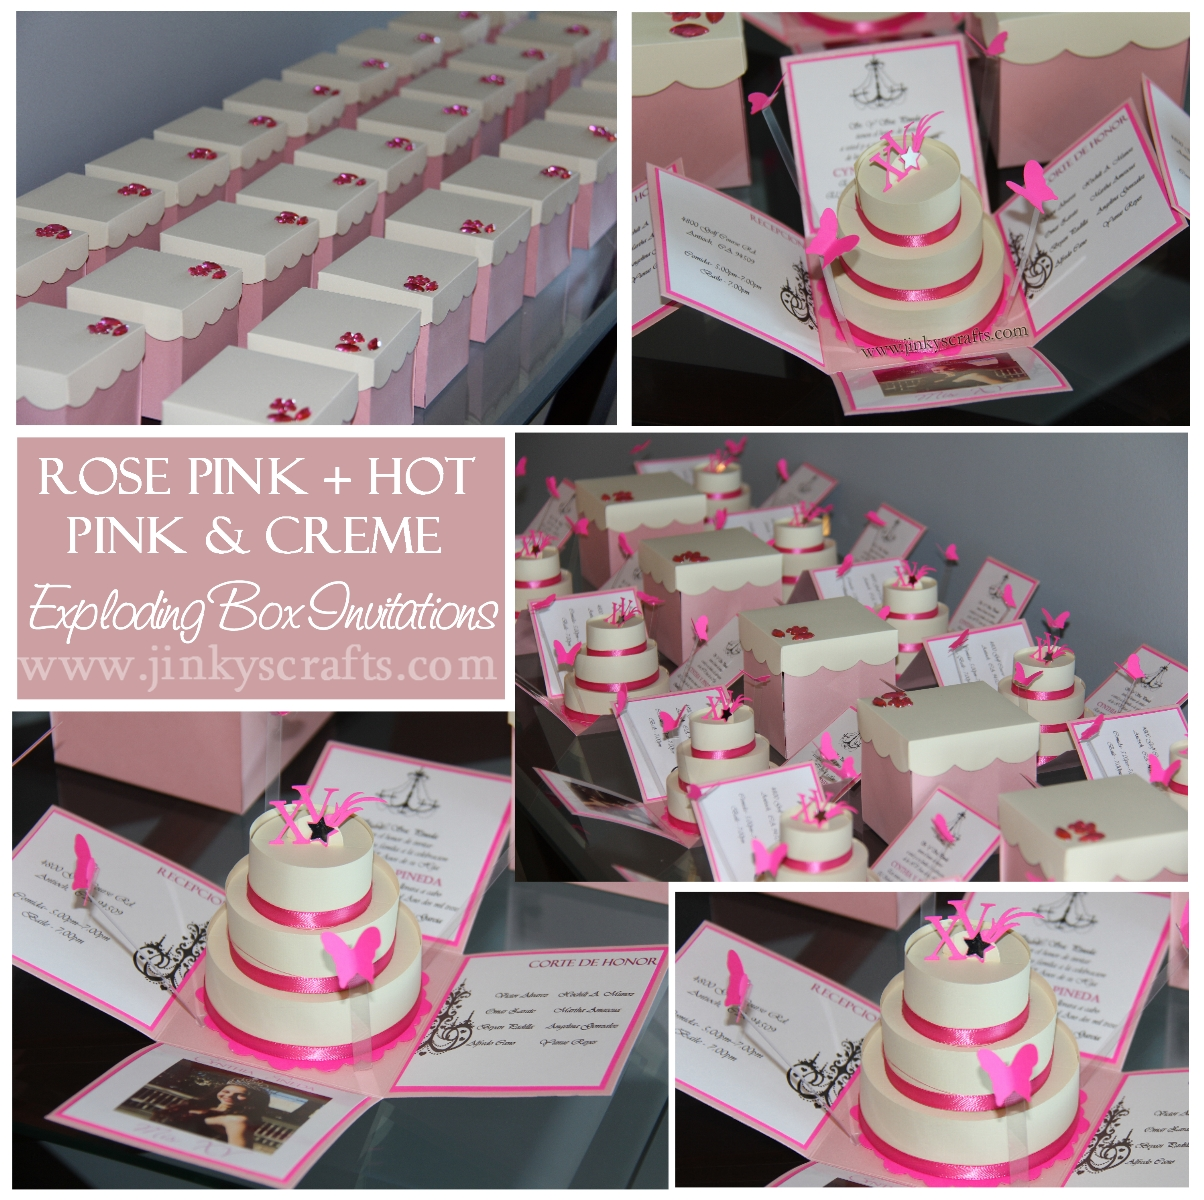 This Exploding Box Photo Album Is So Unique And Amazing: Pink & Creme Mis Quince Exploding Box/ Pop-Up Invitations